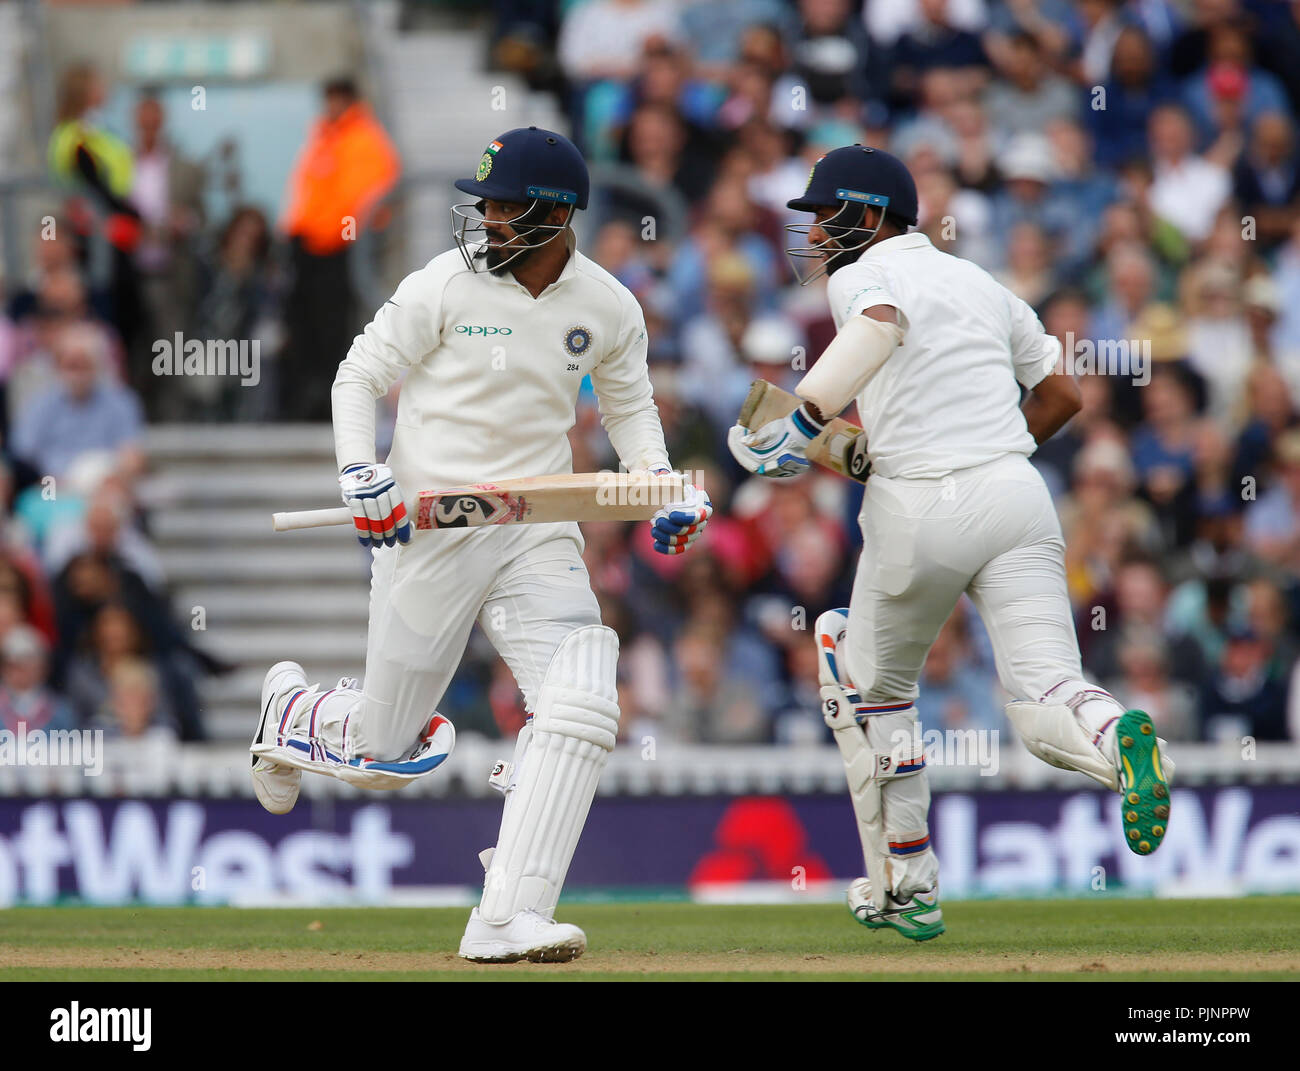 Kia Oval, London, UK. 8th Sep, 2018. Specsavers International Test Match Cricket, 5th test, day 2; KL Rahul and Cheteshwar Pujara of India run between the wickets Credit: Action Plus Sports/Alamy Live News - Stock Image